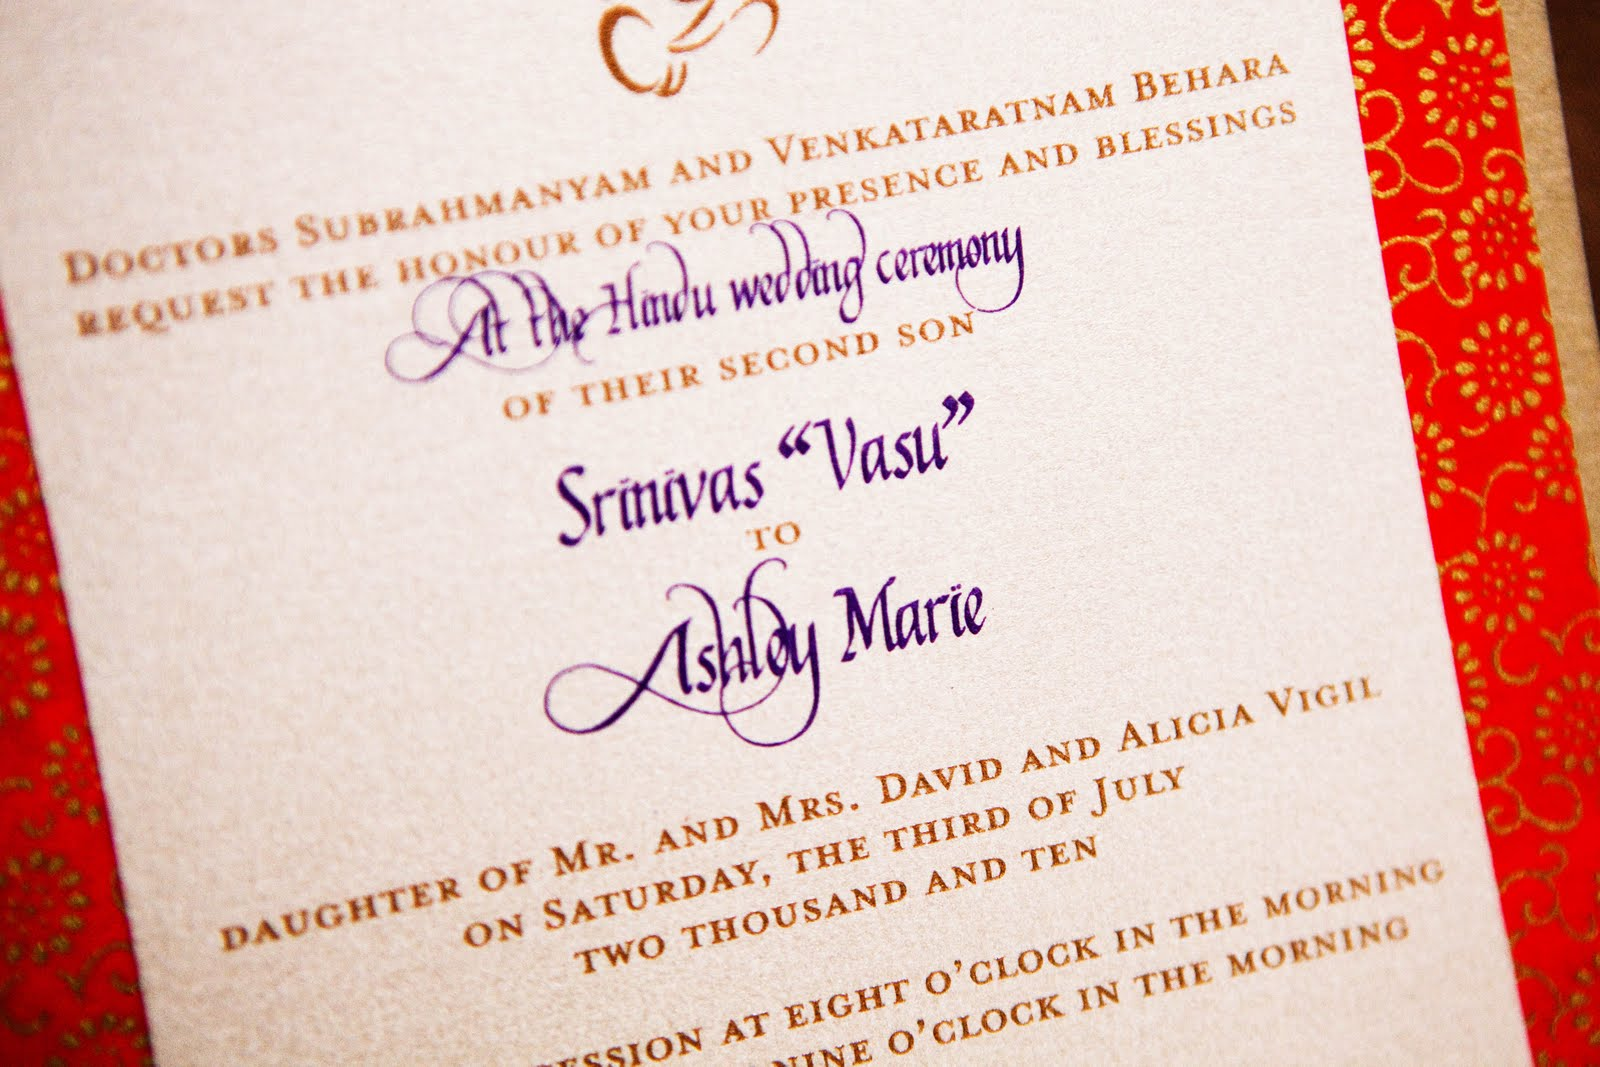 Hindu Wedding Invitation Card: The Inviting Pear Photoblog: A Spectacular Hindu Wedding